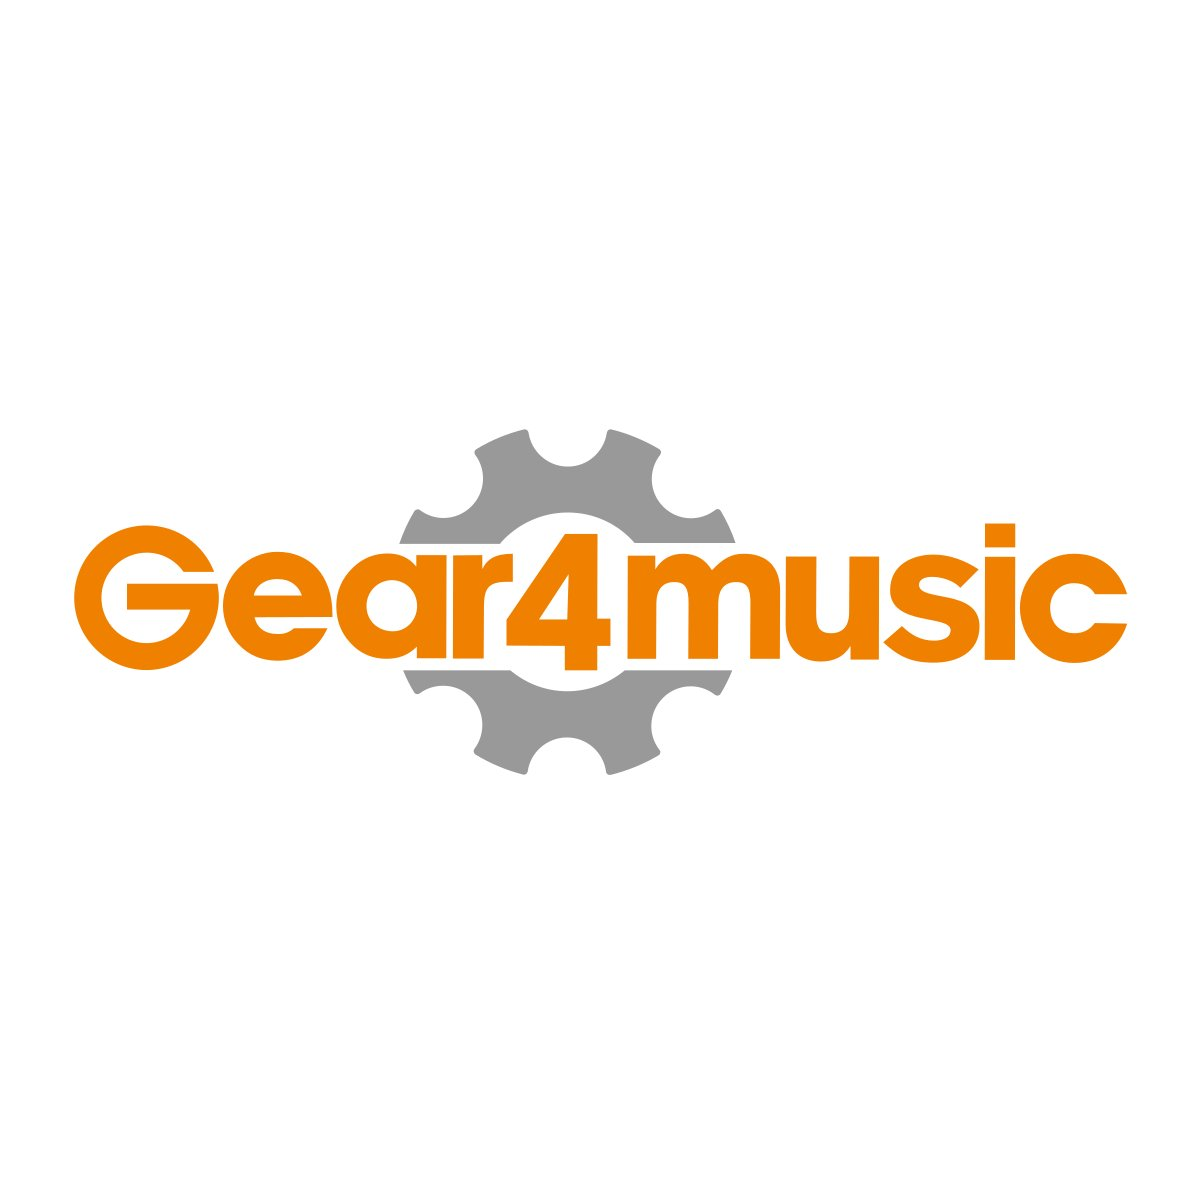 GDP-200 Pianoforte a Coda Digitale di Gear4music